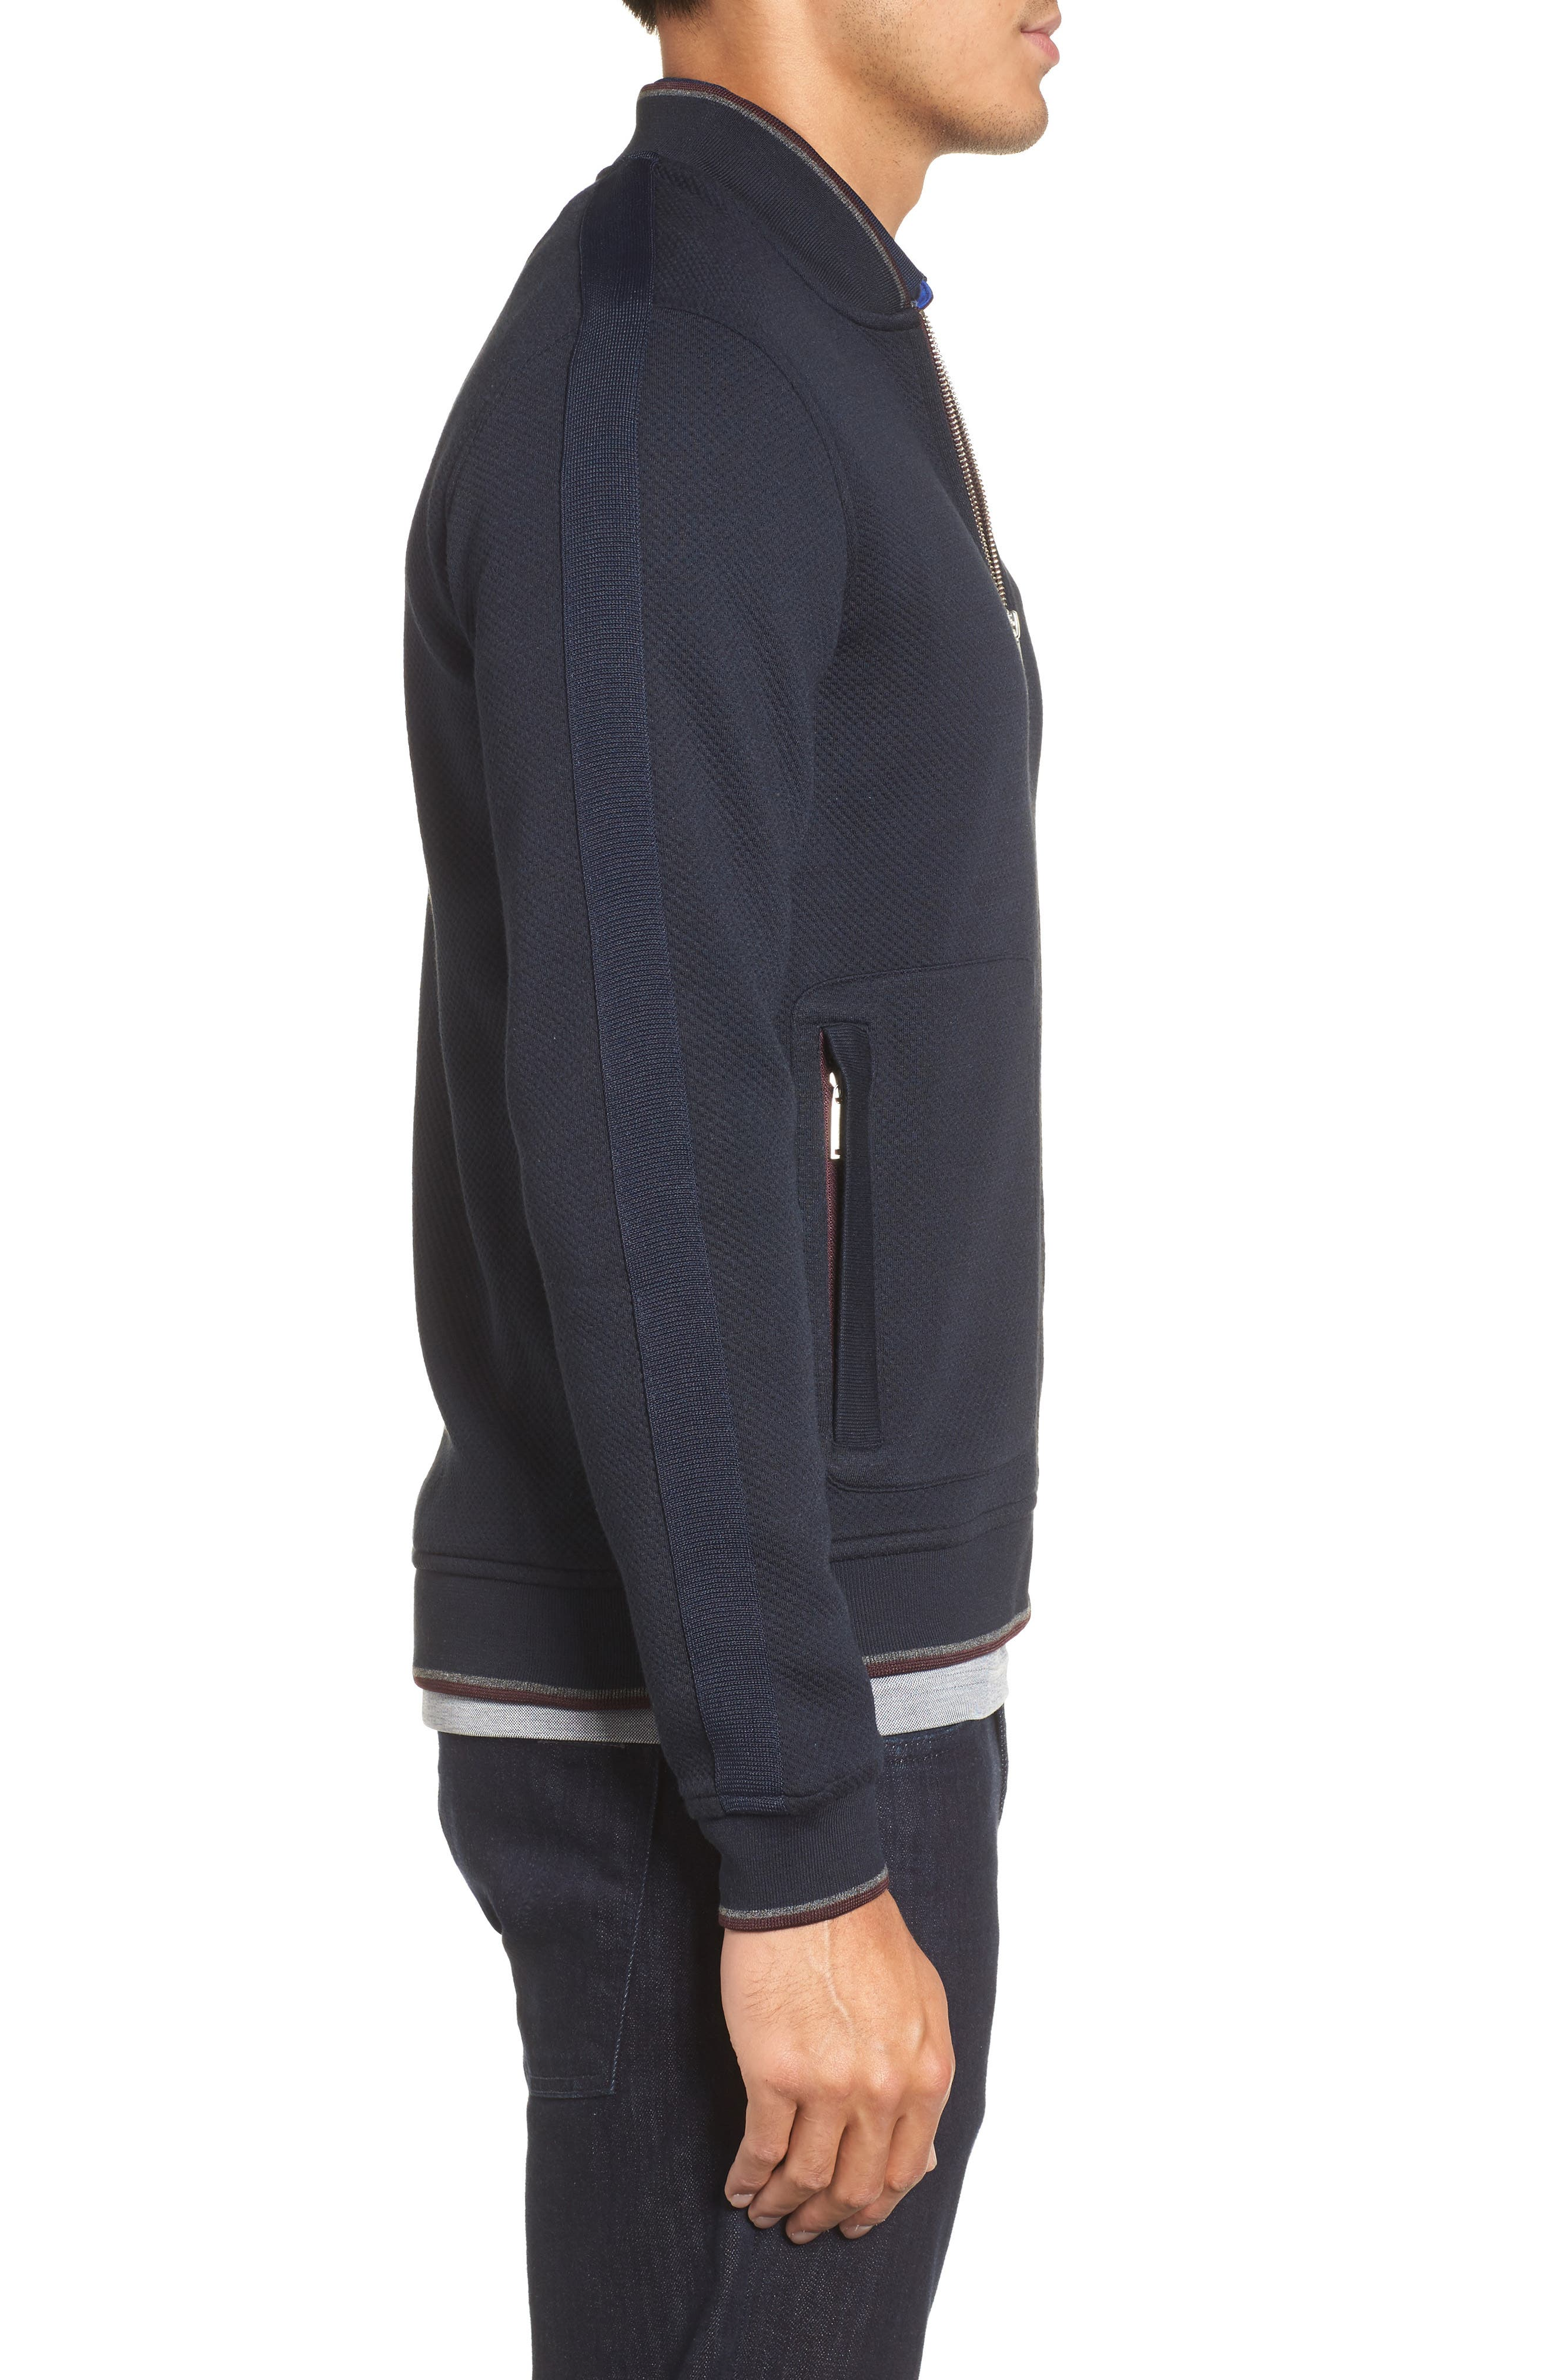 Whatts Trim Fit Textured Bomber Jacket,                             Alternate thumbnail 3, color,                             410